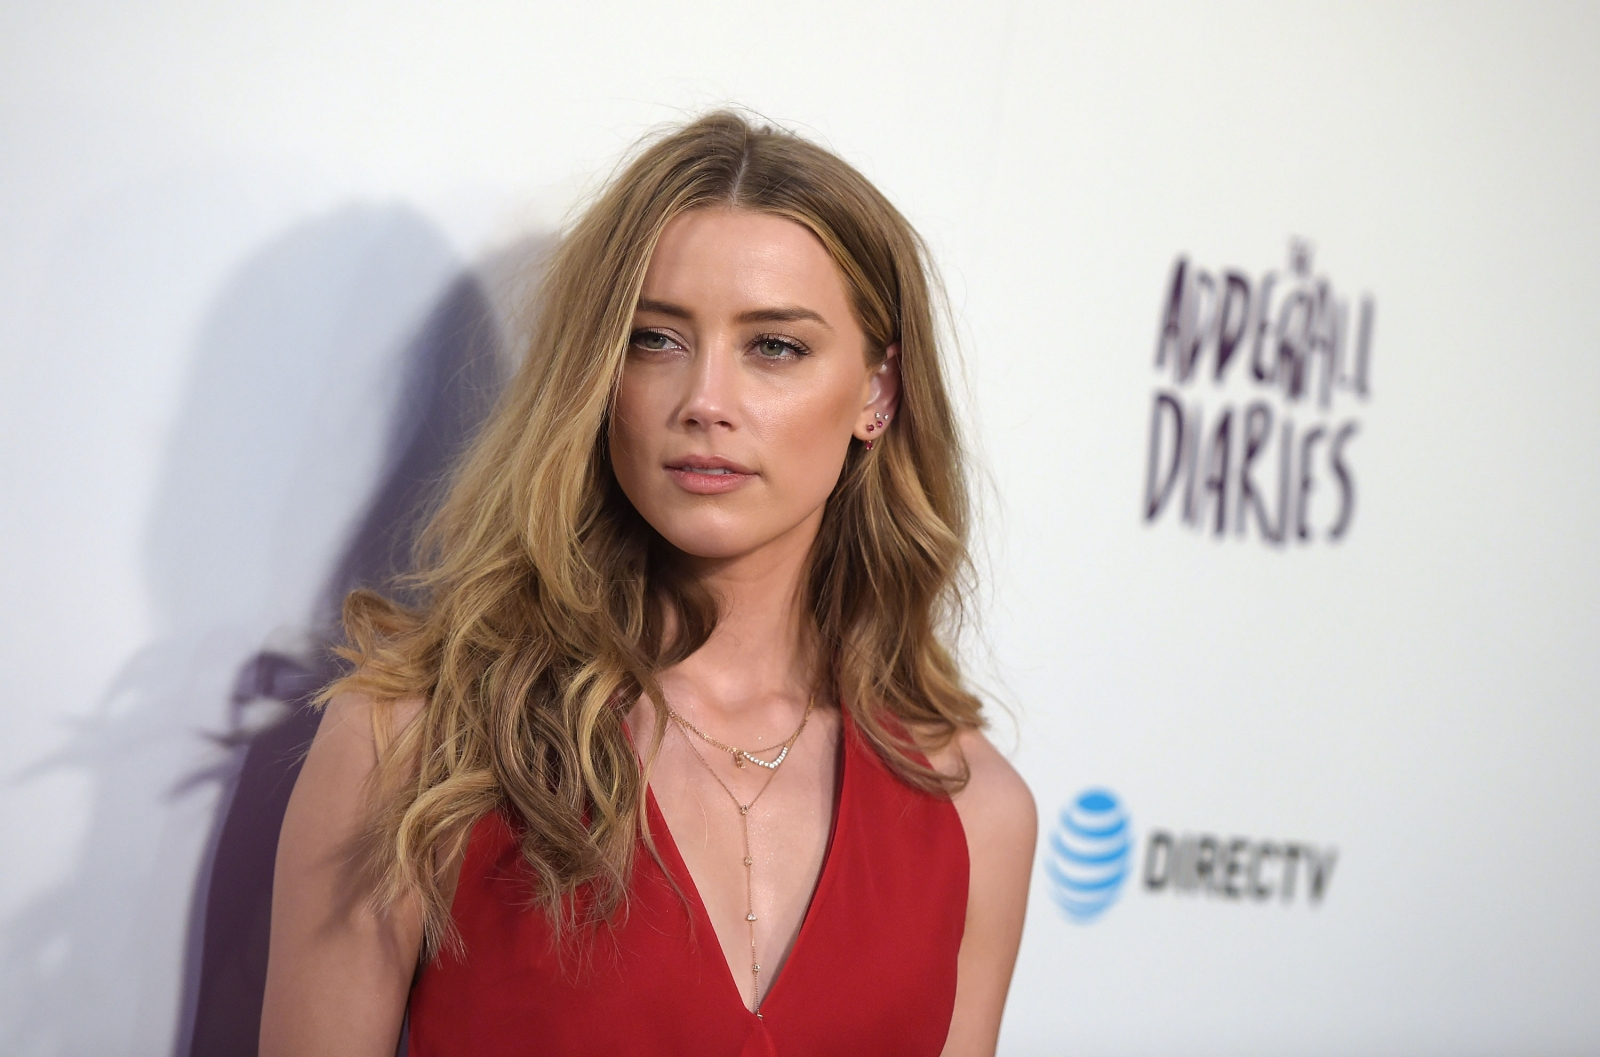 'Elon Musk's loss!' Amber Heard goes topless in sexy Instagram photo